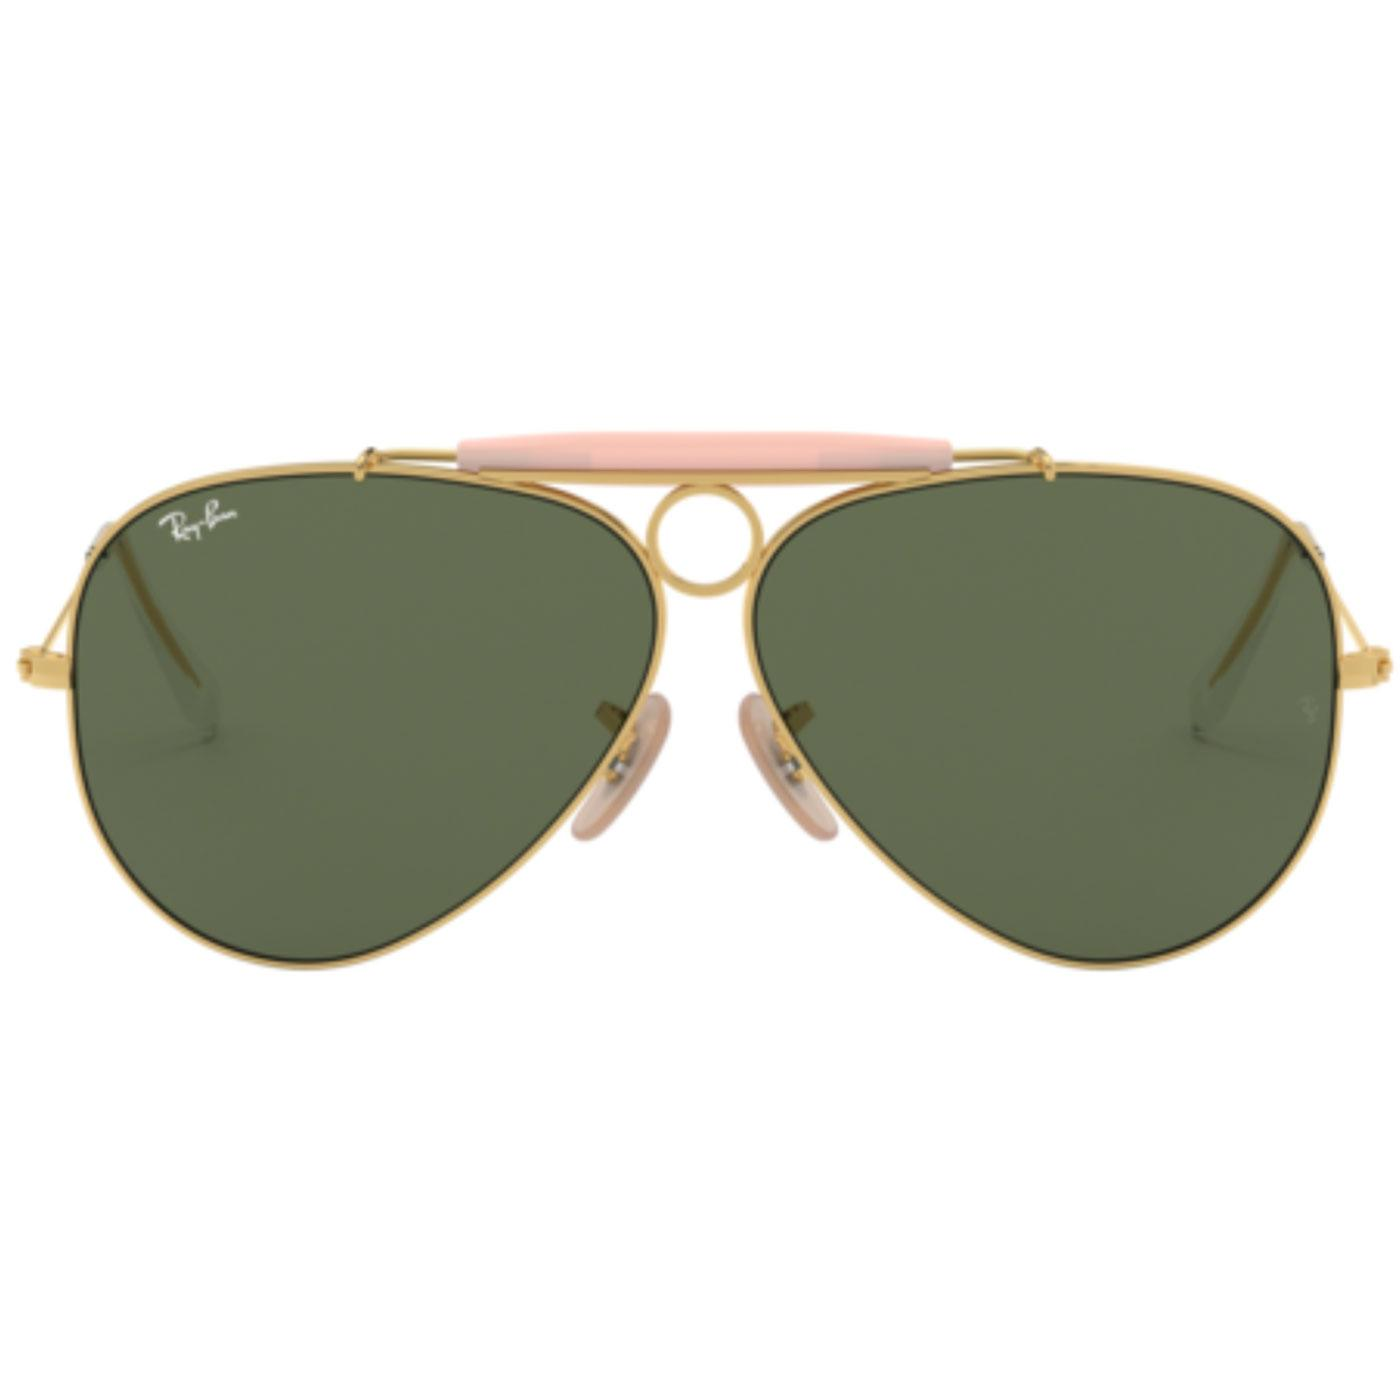 82cf0dbc4e Shooter RAY-BAN Icon Retro 70s Mod Sunglasses Gold